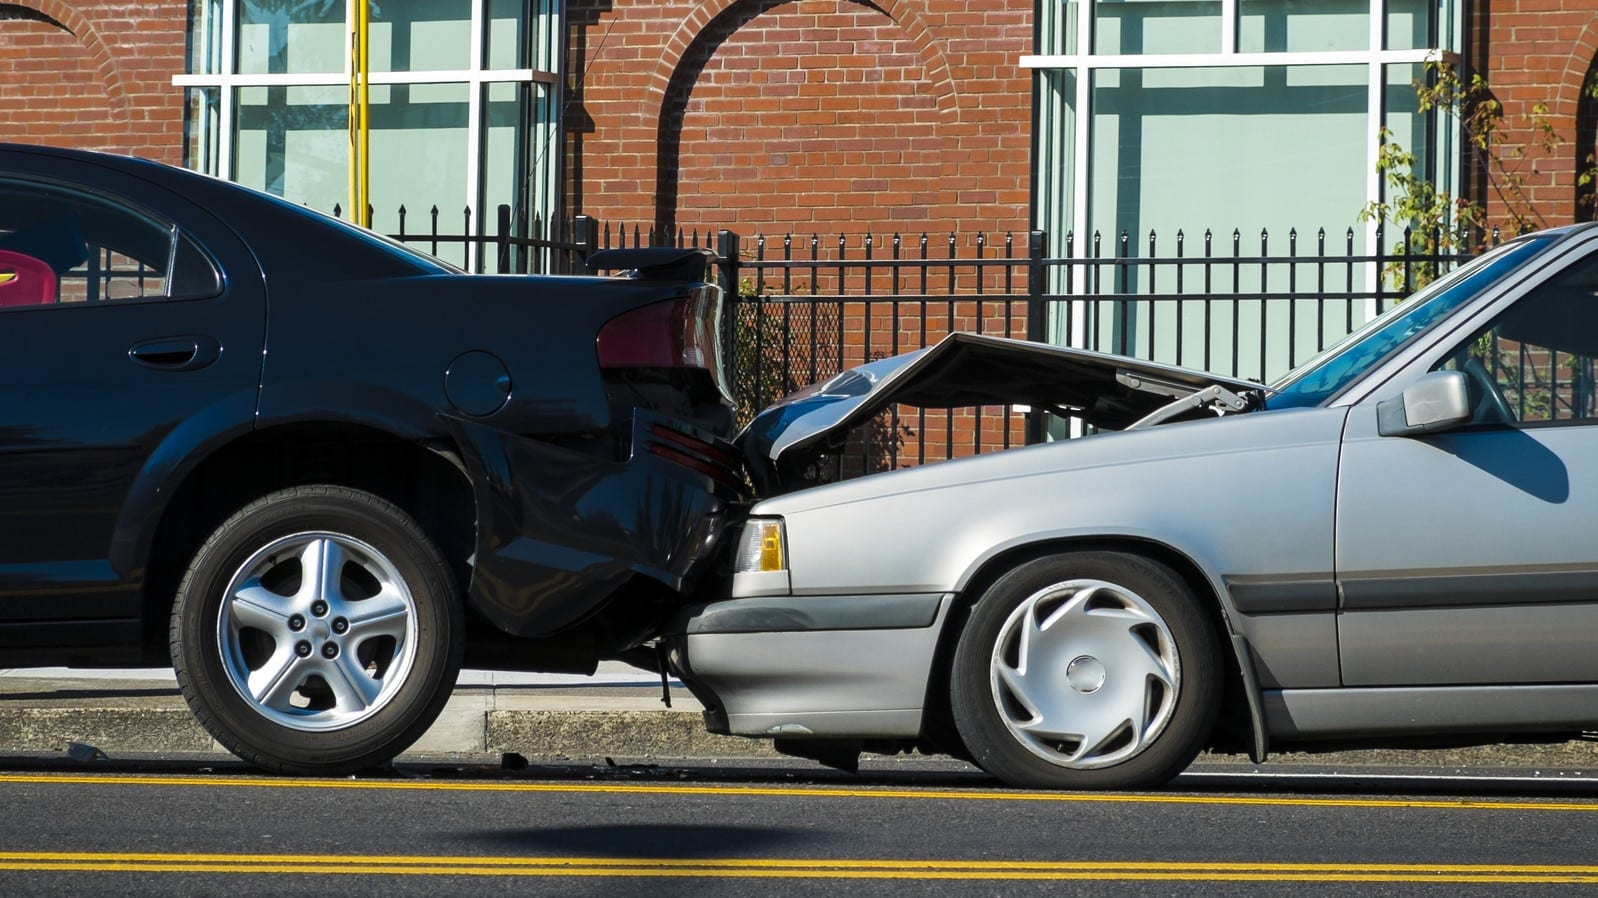 Rear End Auto Accident Stock Photo